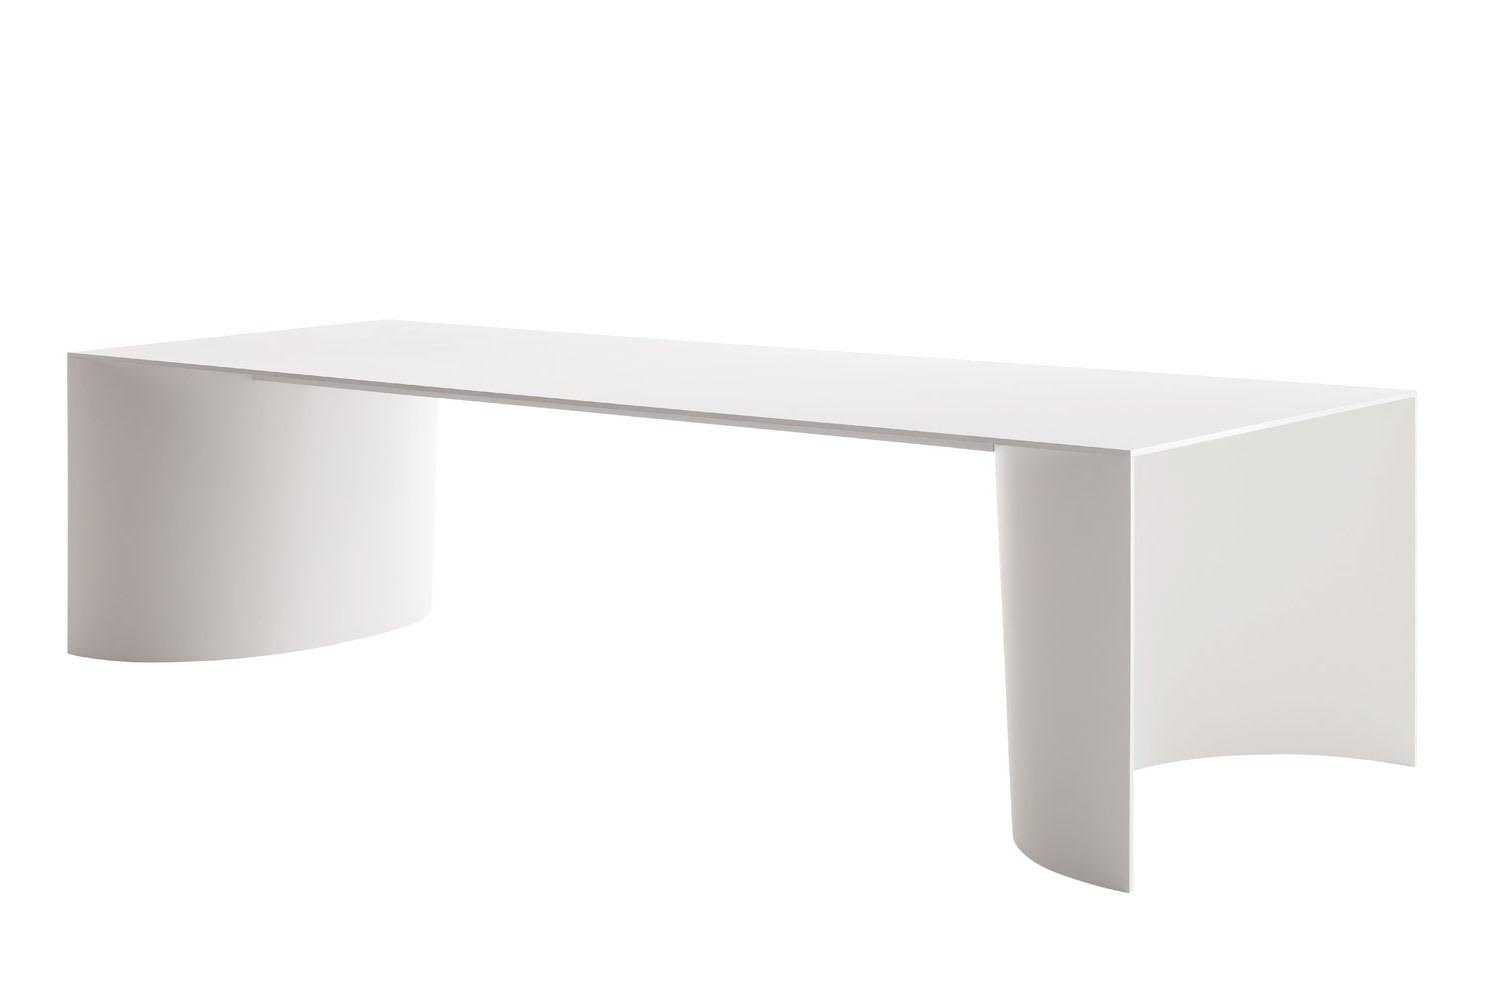 Archie Table by Paolo Piva for B&B Italia